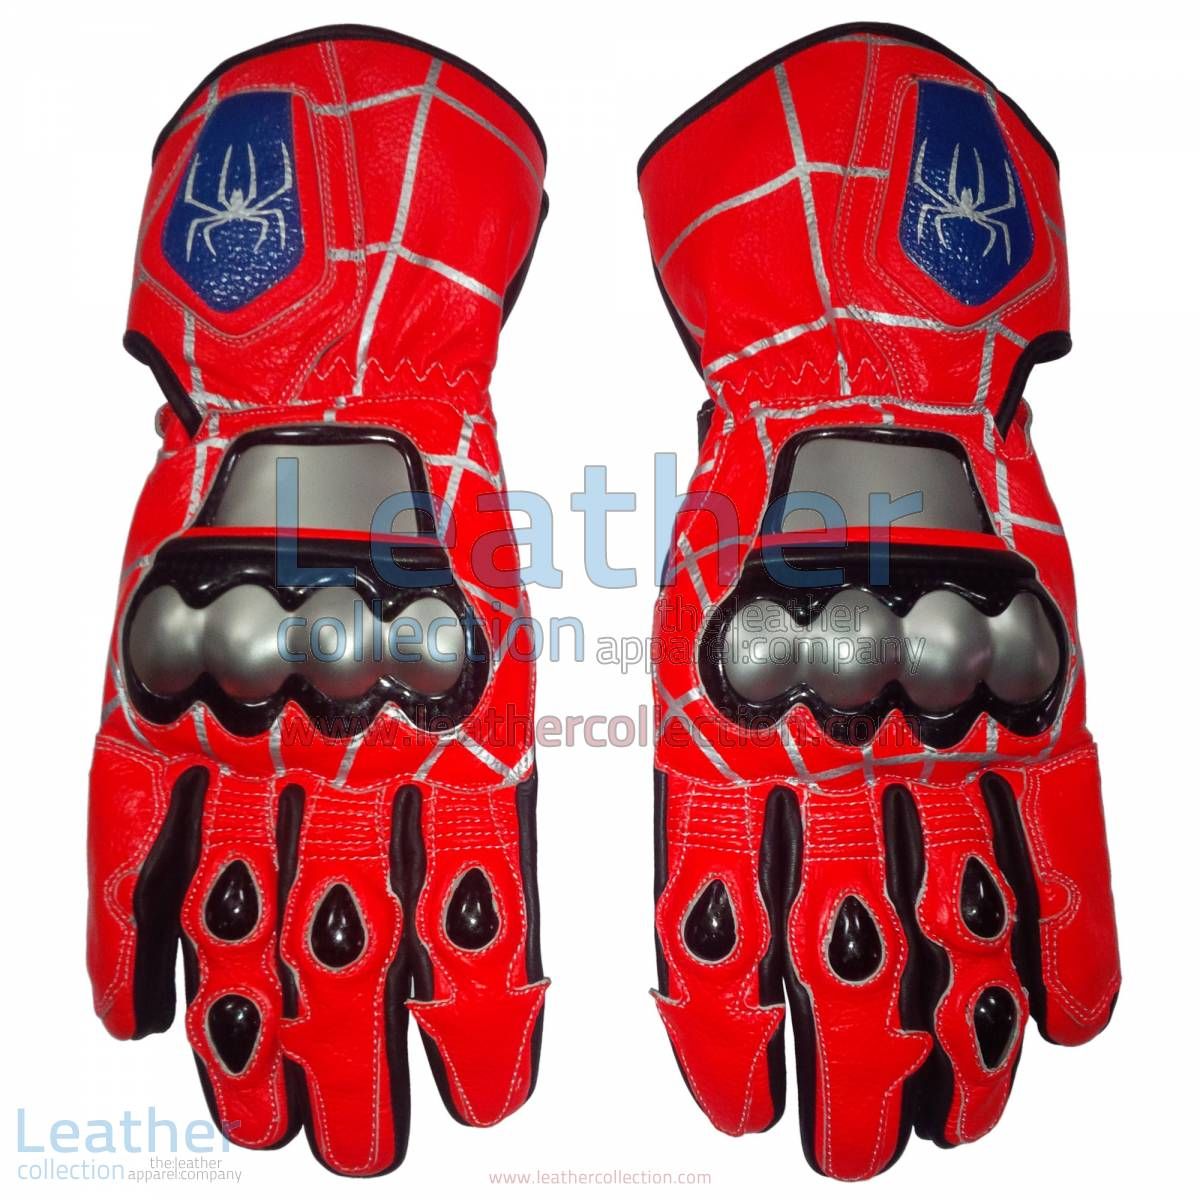 Spiderman Leather Motorbike Race Gloves | spiderman gloves,Spiderman leather motorcycle race gloves